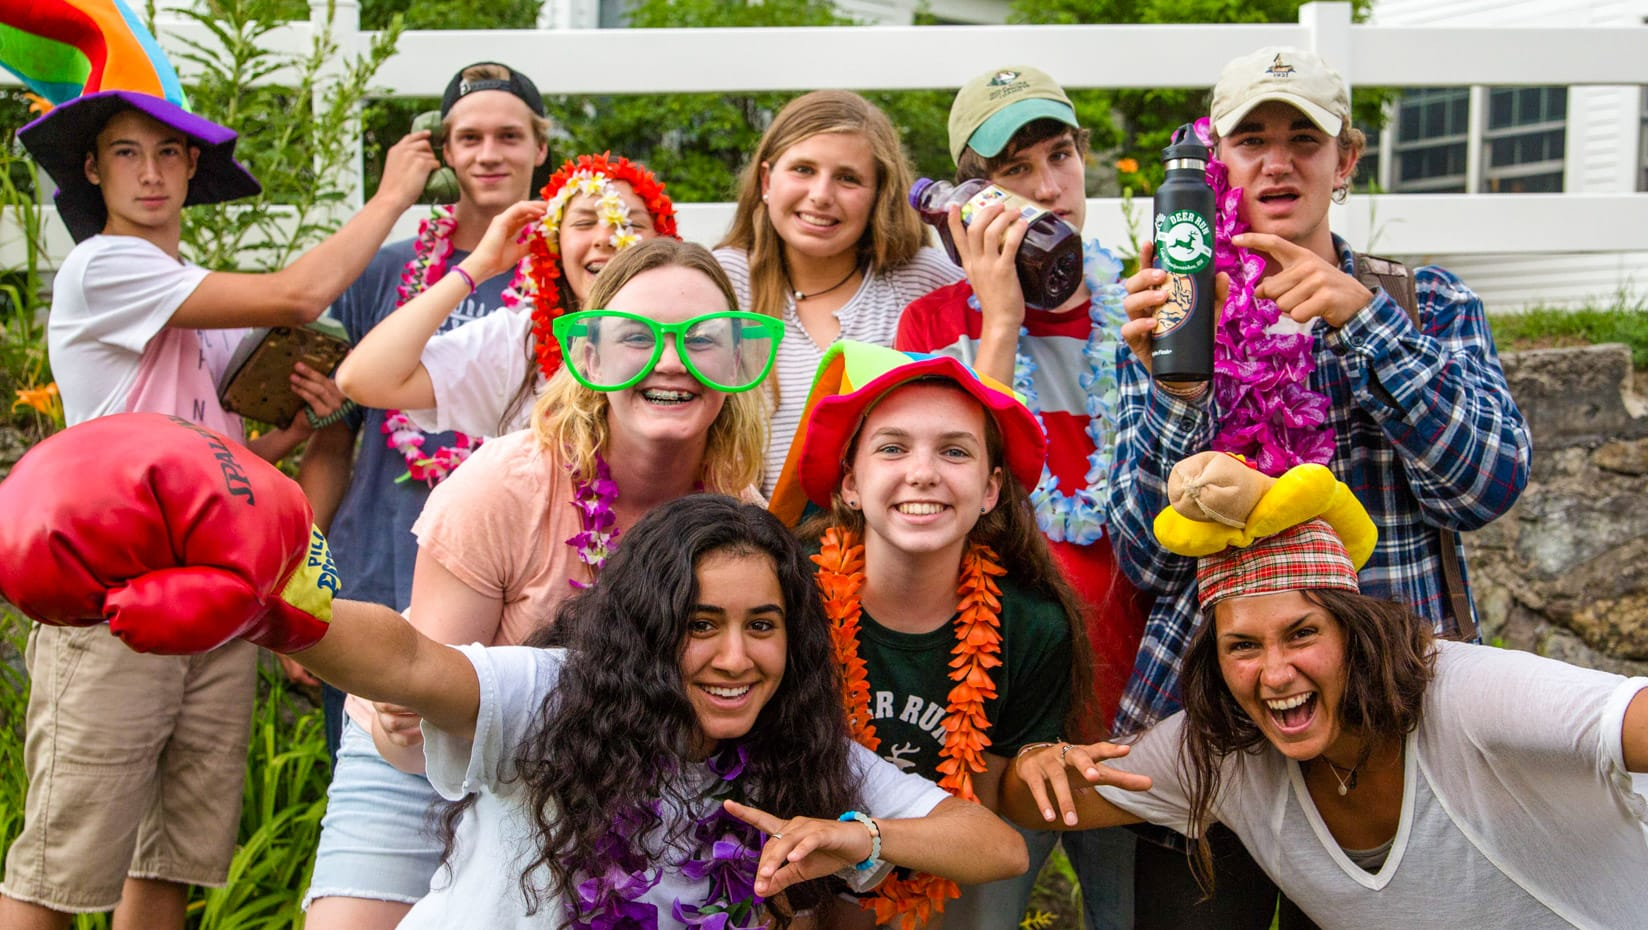 Campers dressed in costumes for July Sock Hop event